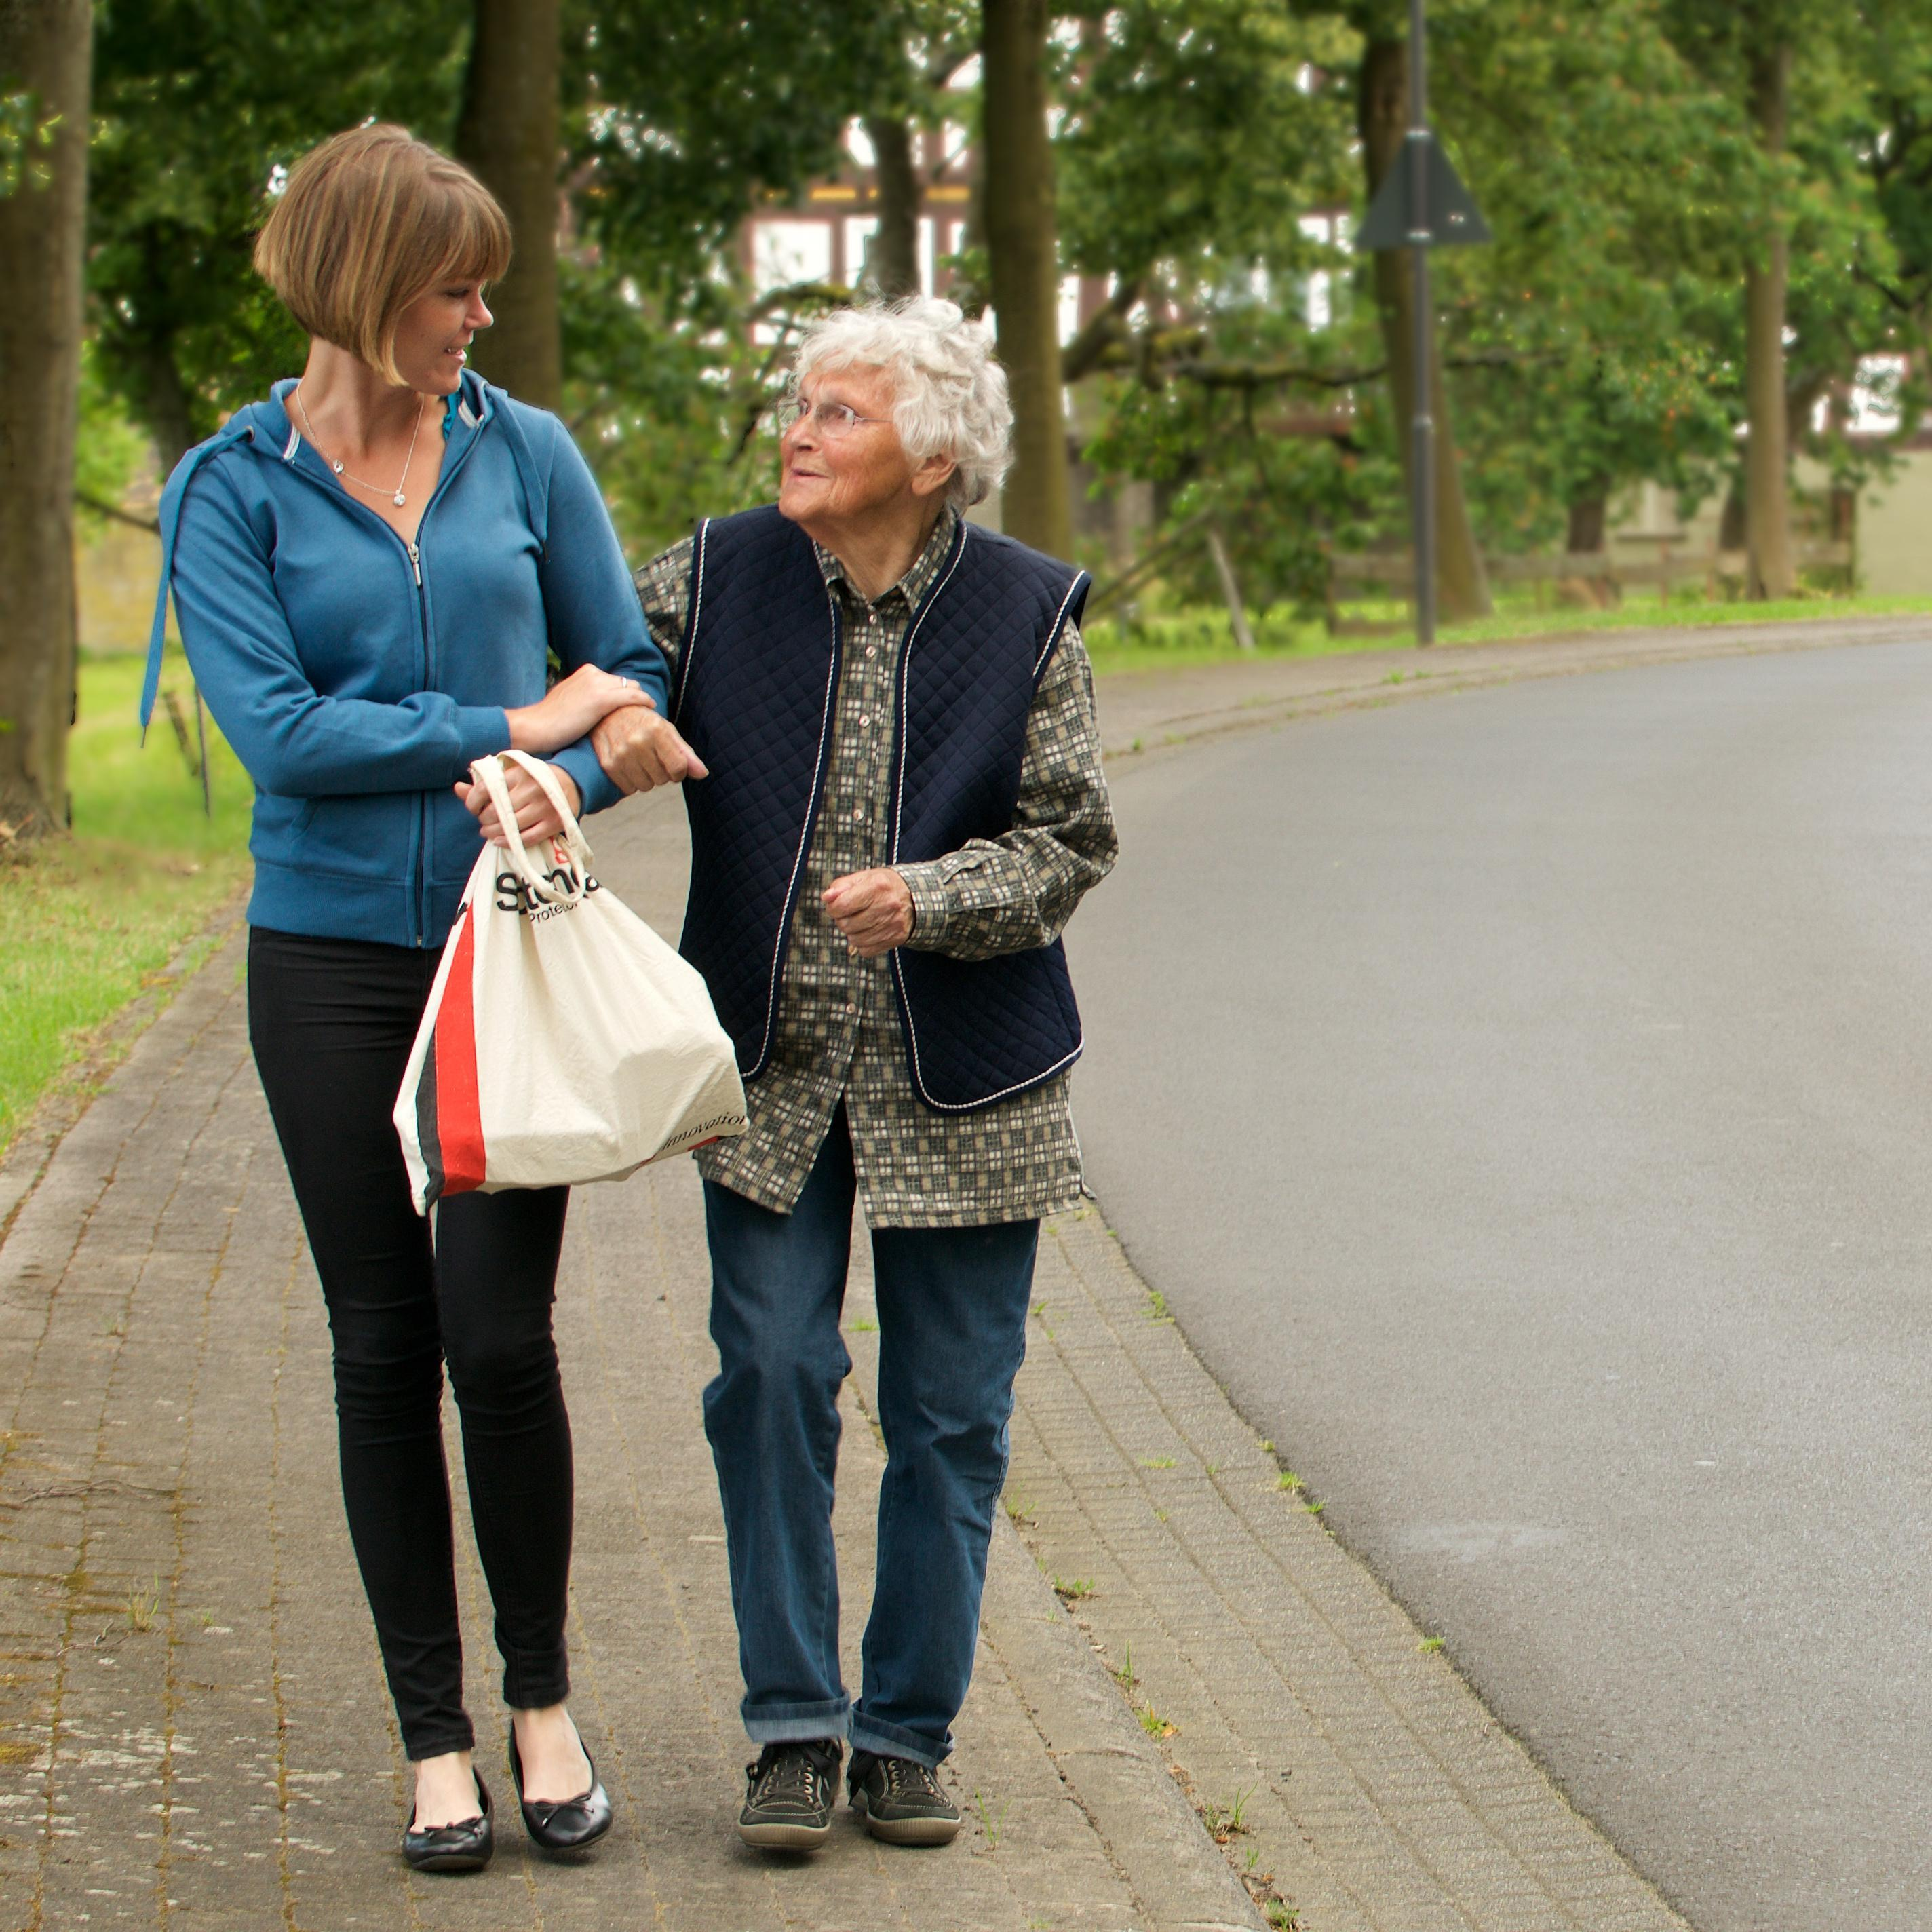 How Do You Care for Elderly Parents at Home?